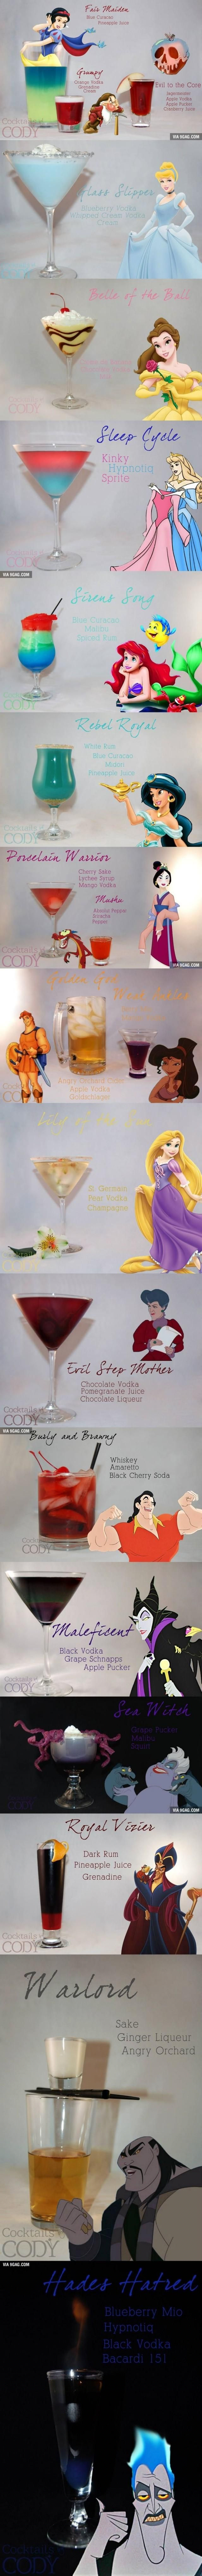 16 Disney Themed Cocktails You Will Want To Try disney